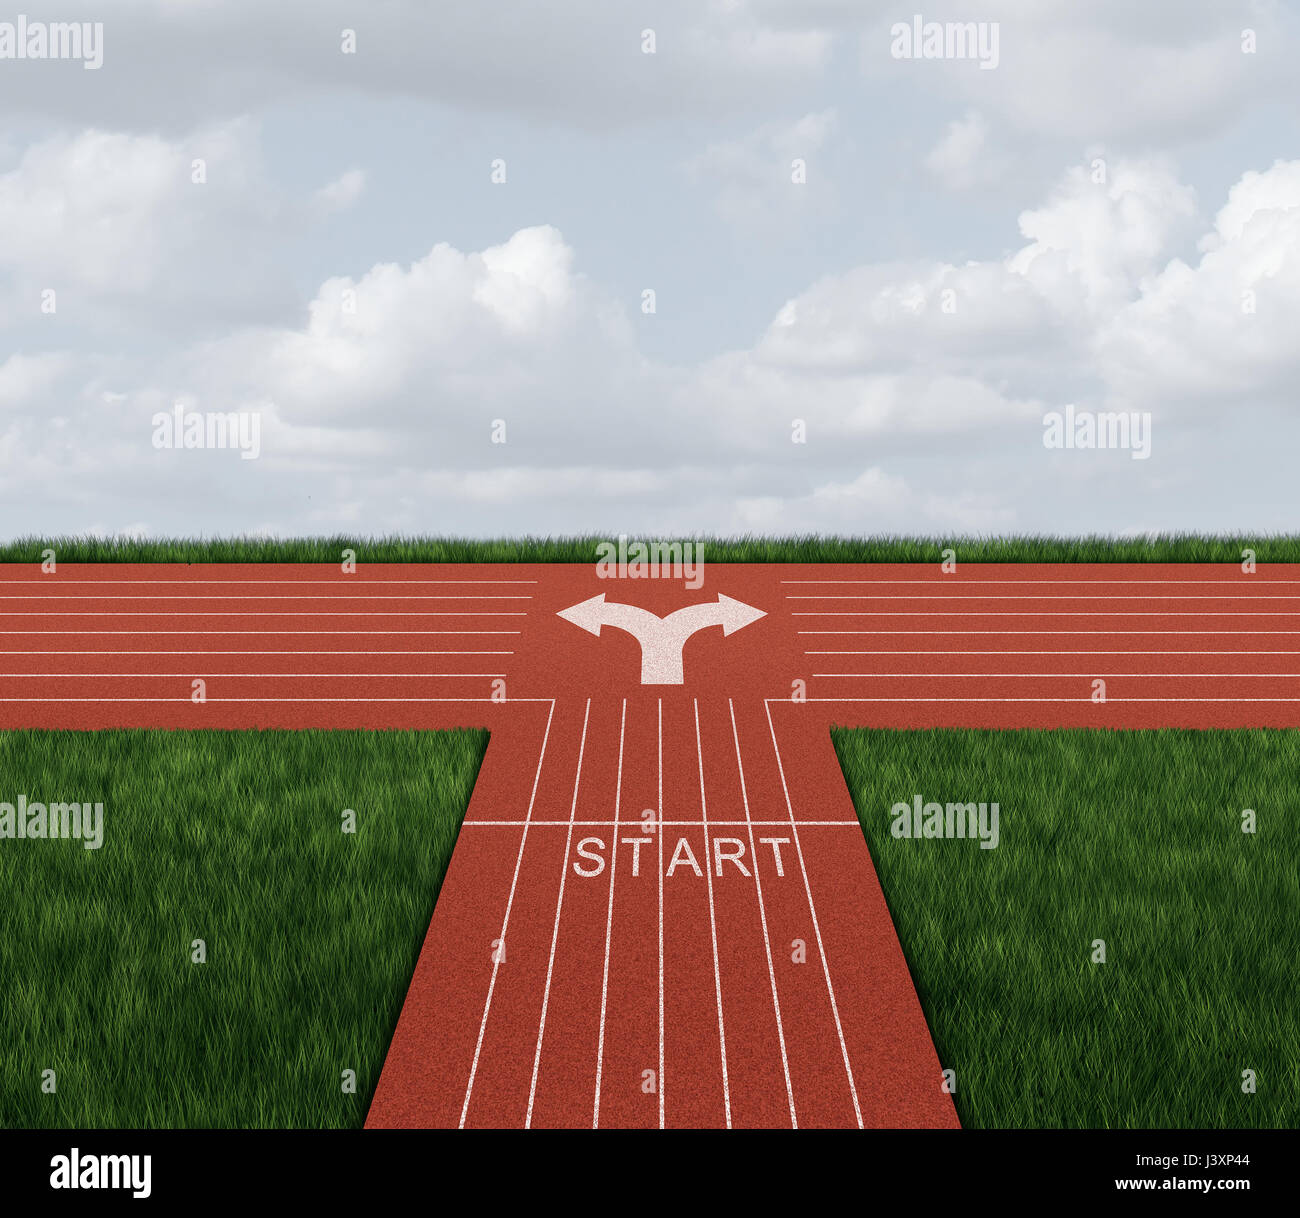 Direction race decision as a business confusion concept and career path metaphor with 3D illustration elements. - Stock Image